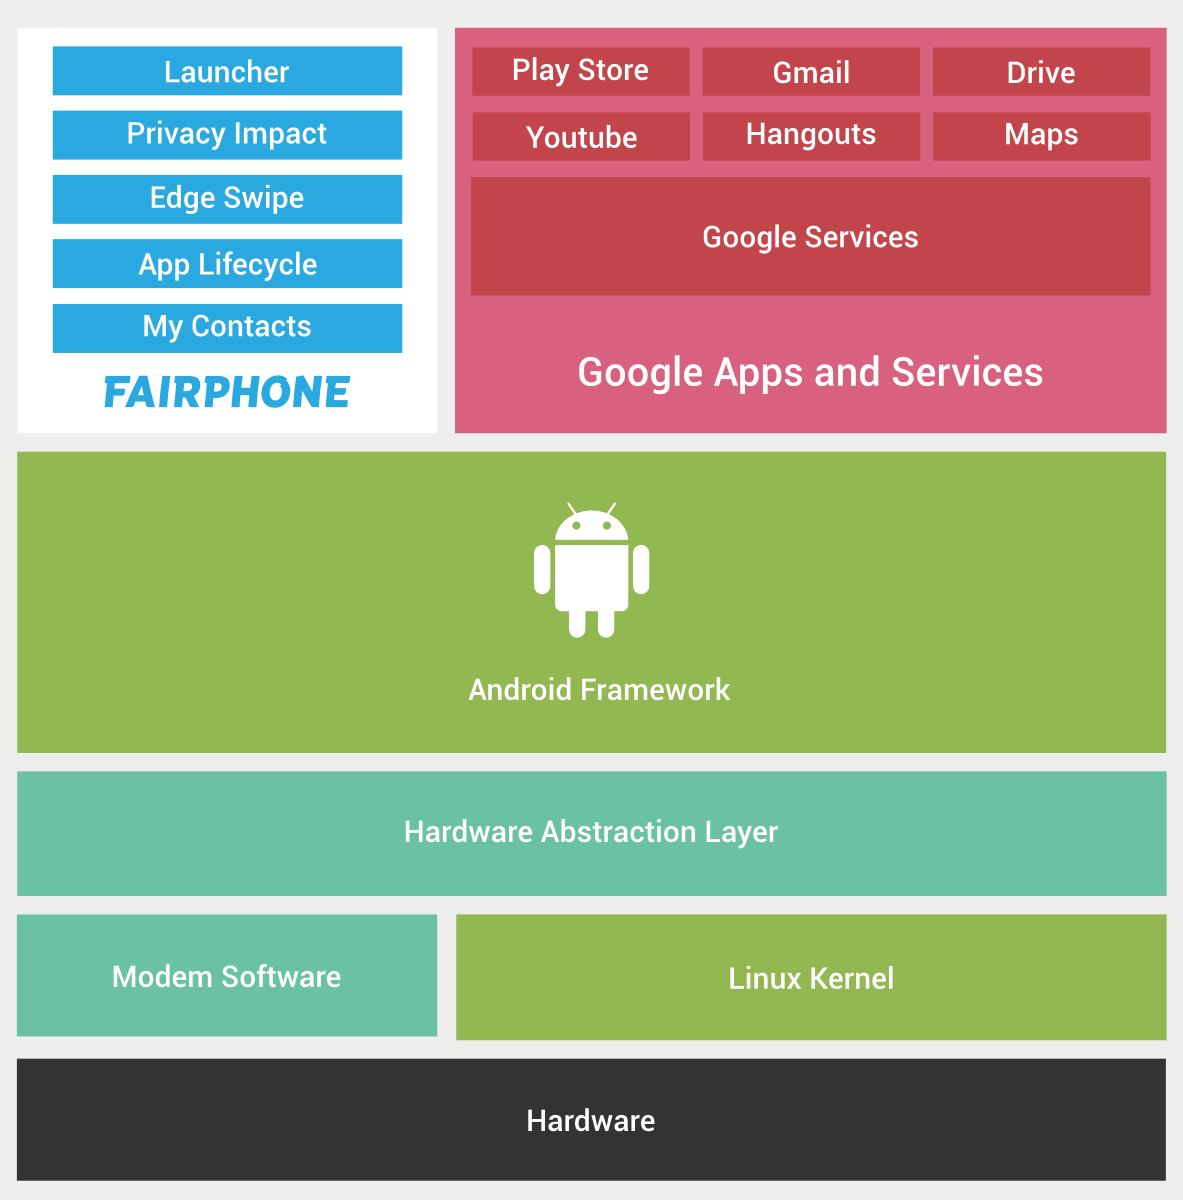 General Android-stack question - Development - Fairphone